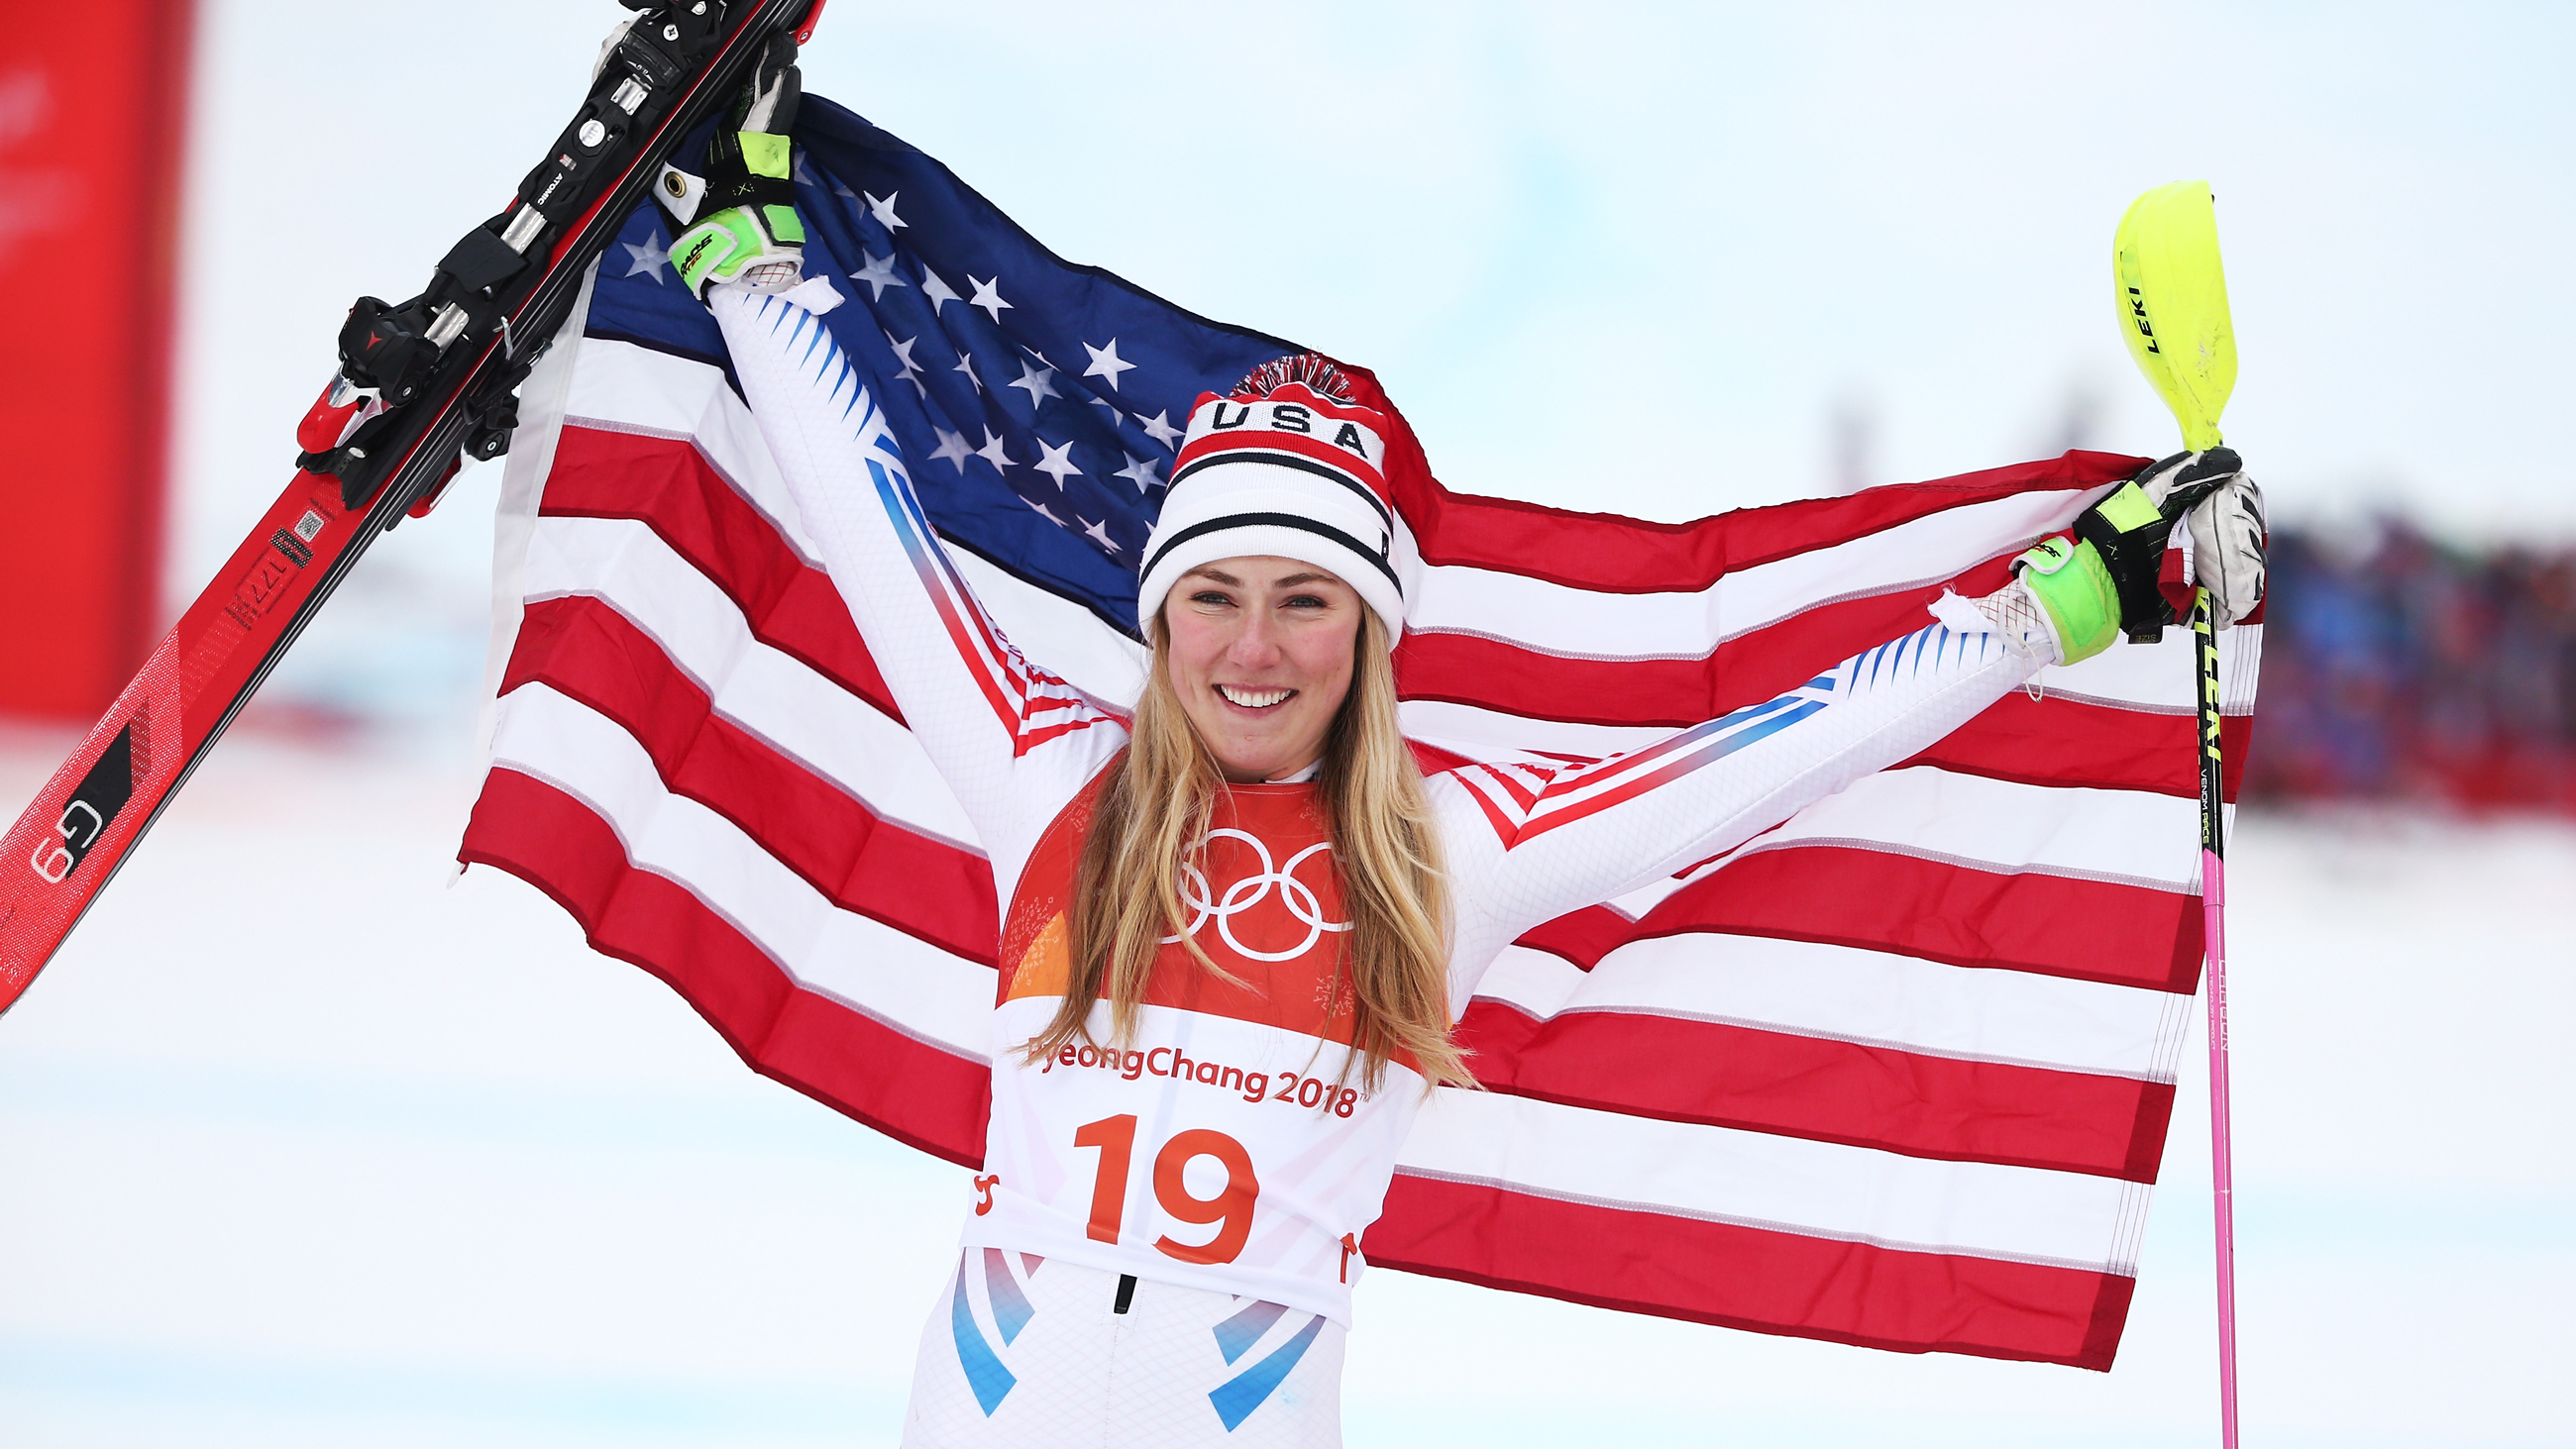 Mikaela Shiffrin celebrates her silver medal in alpine combined Thursday at the 2018 Olympic Winter Games. (Getty Images - Dan Istitene)